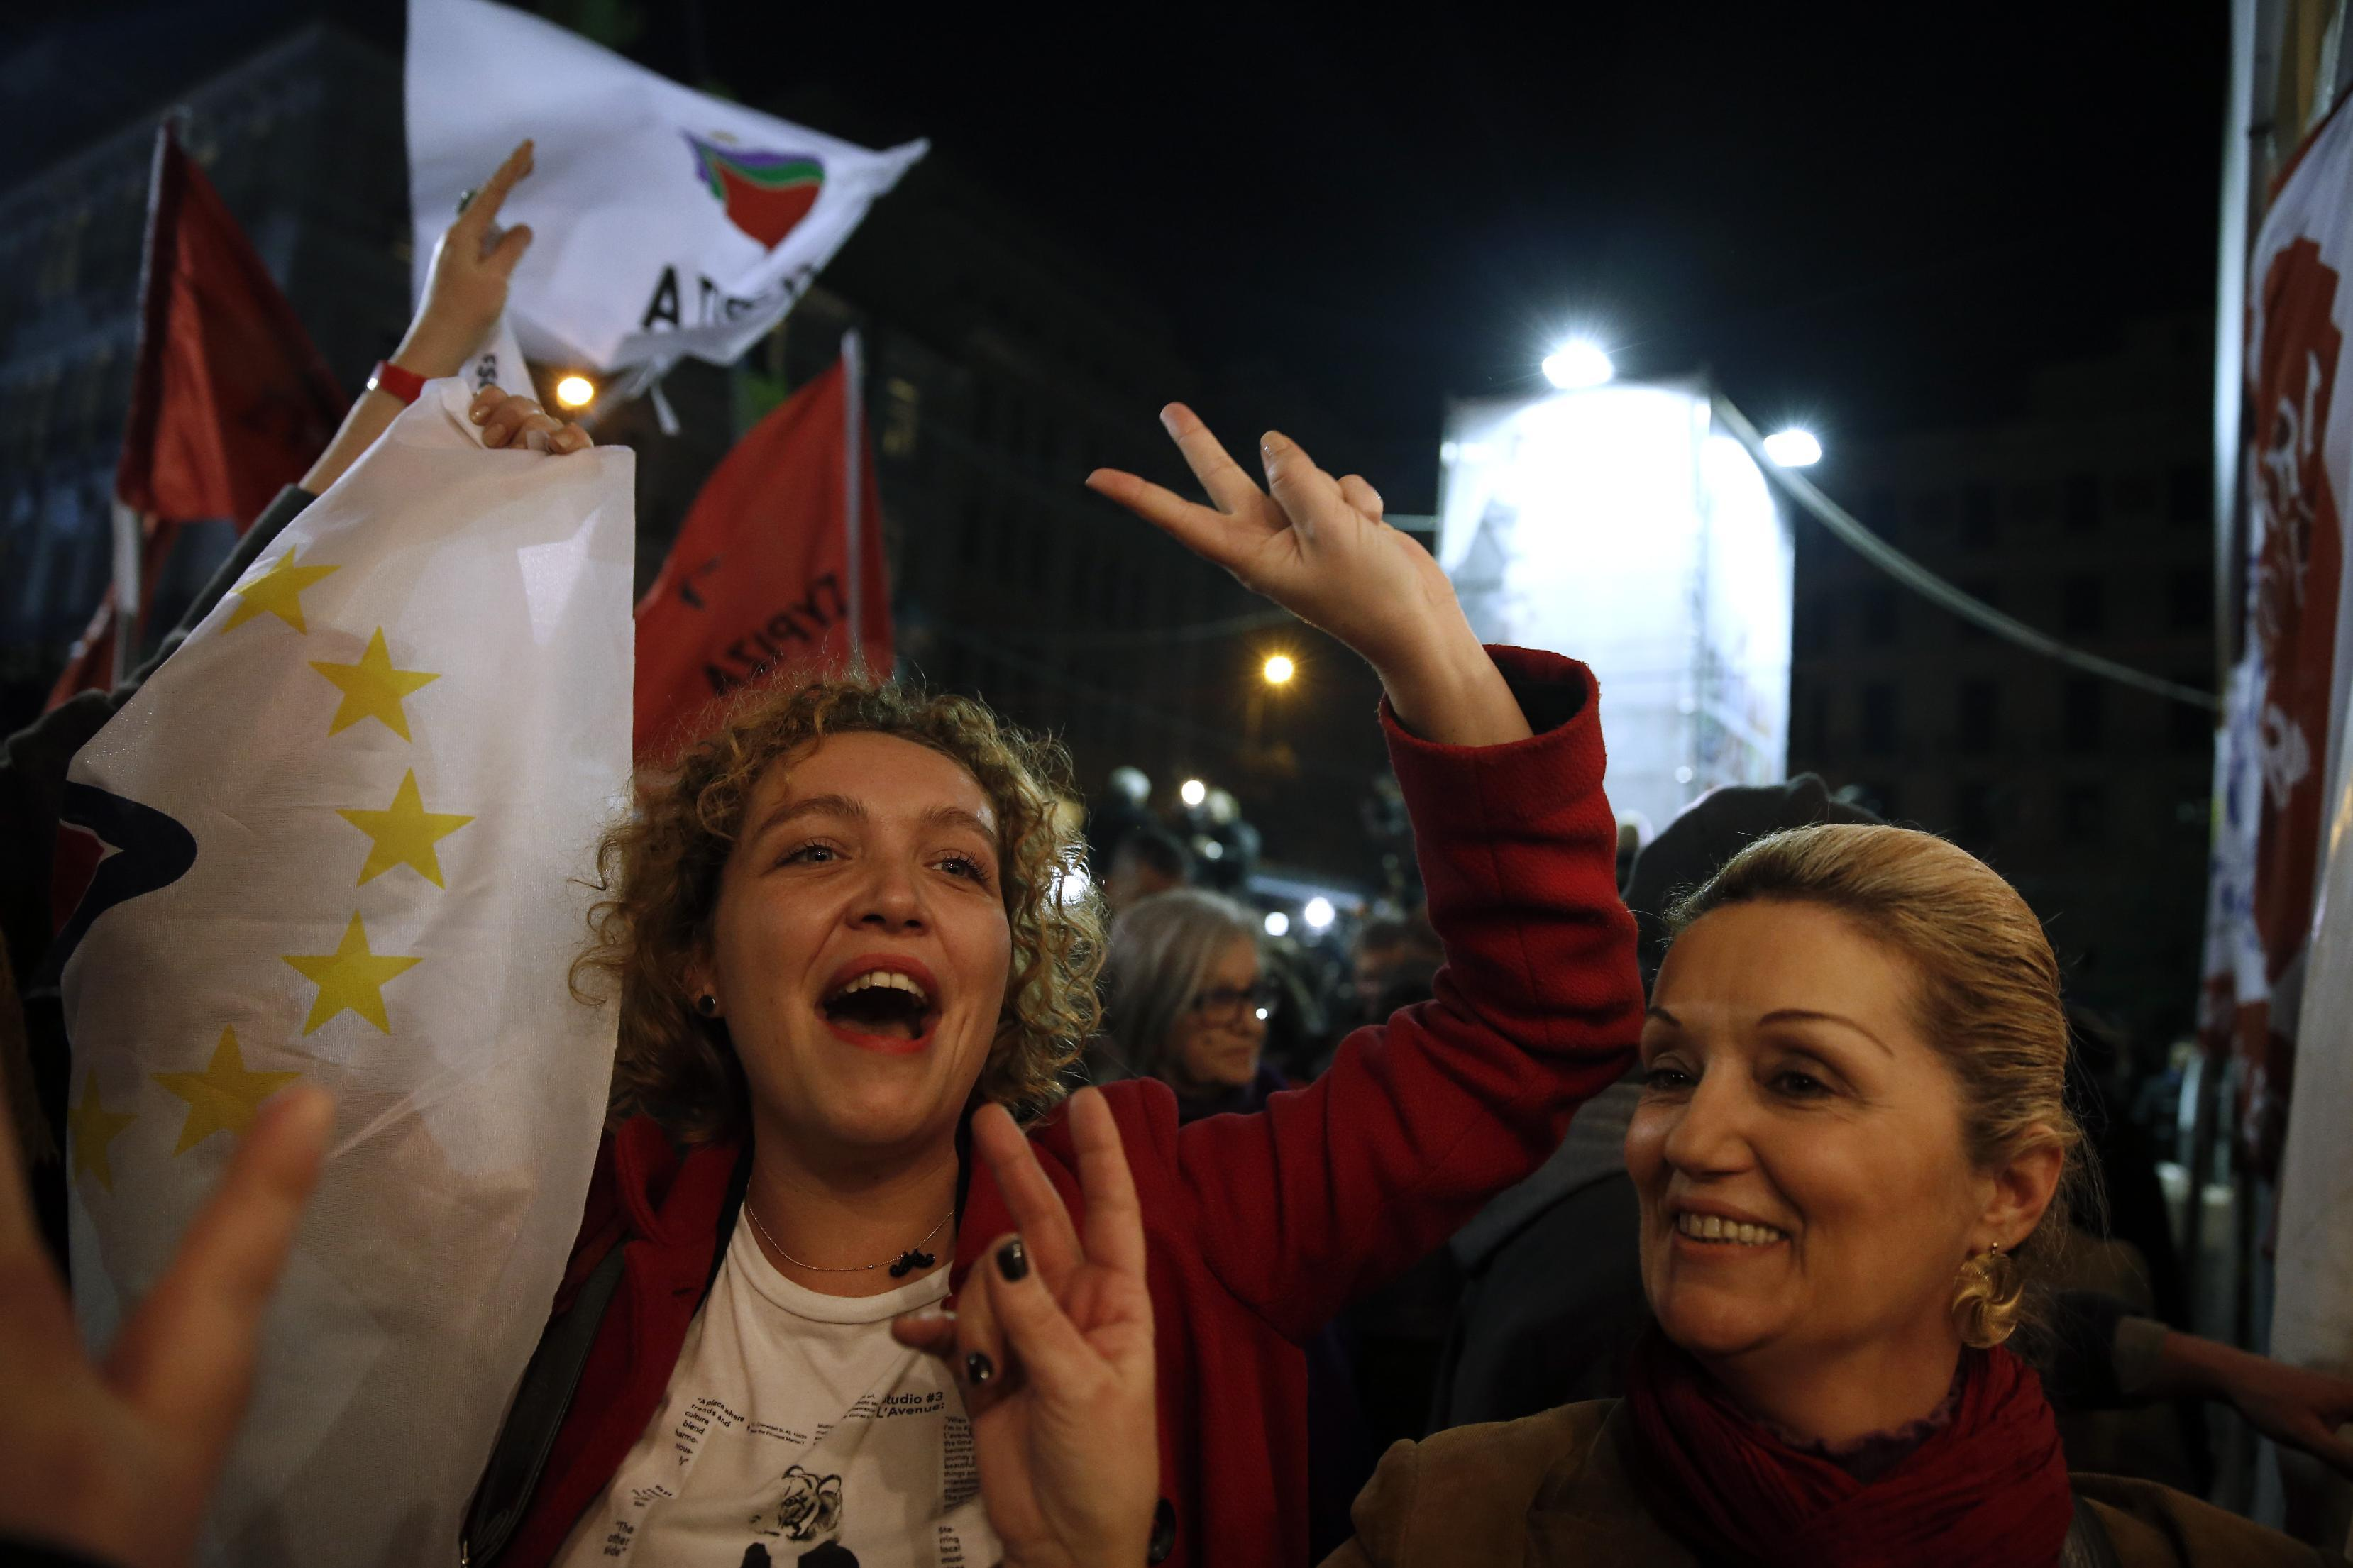 Greek election: Syriza governing majority too close to call